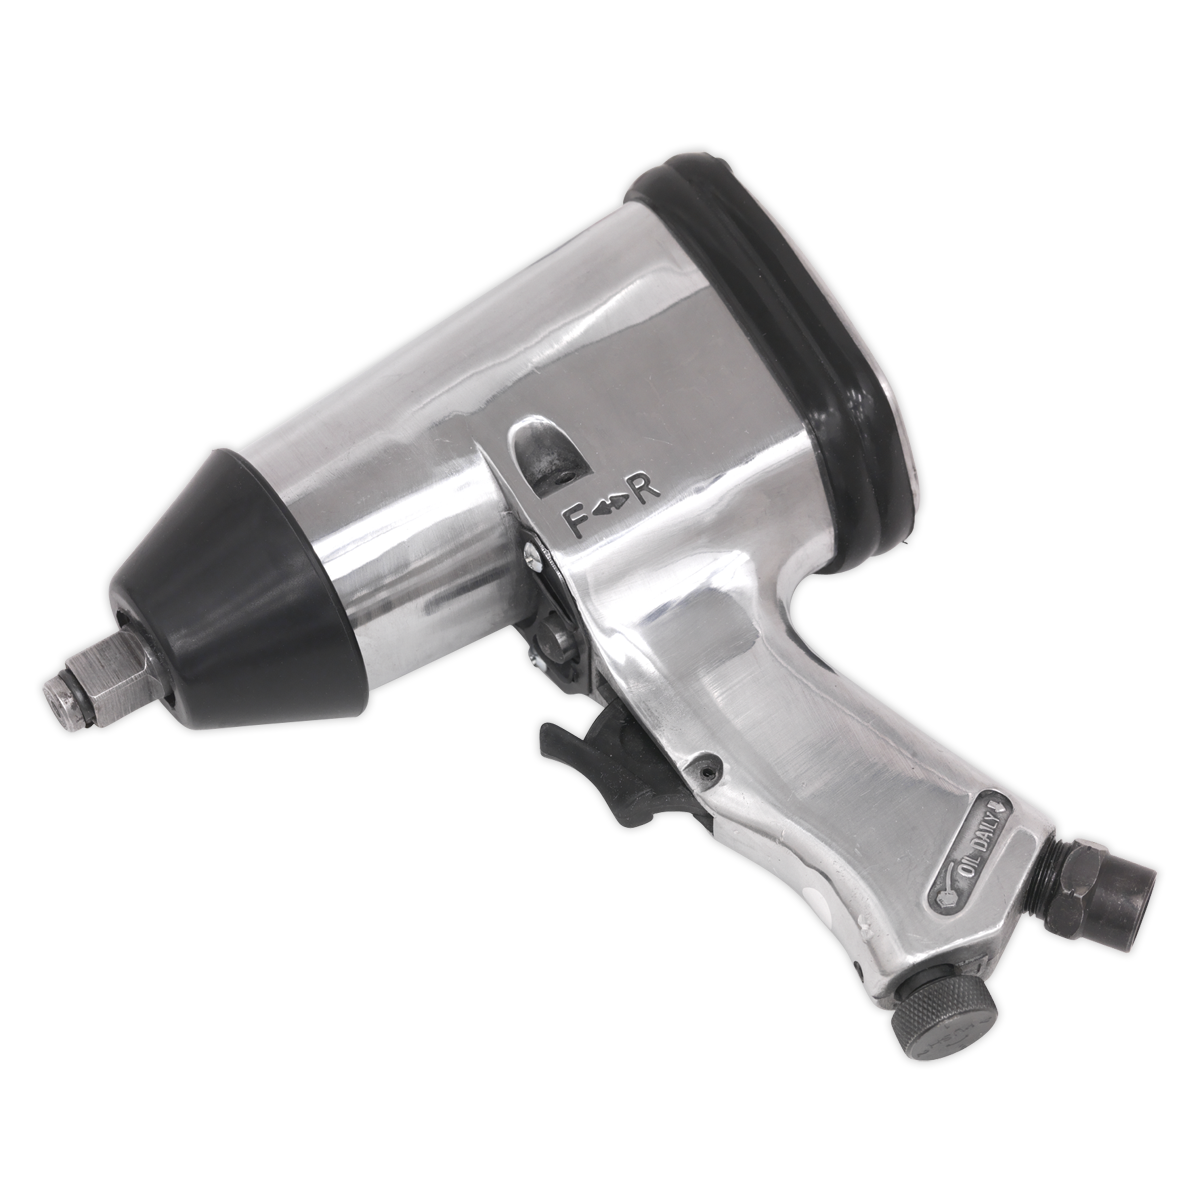 Air Impact Wrench 1 2 Sq Drive Sealey S0100 by Sealey New